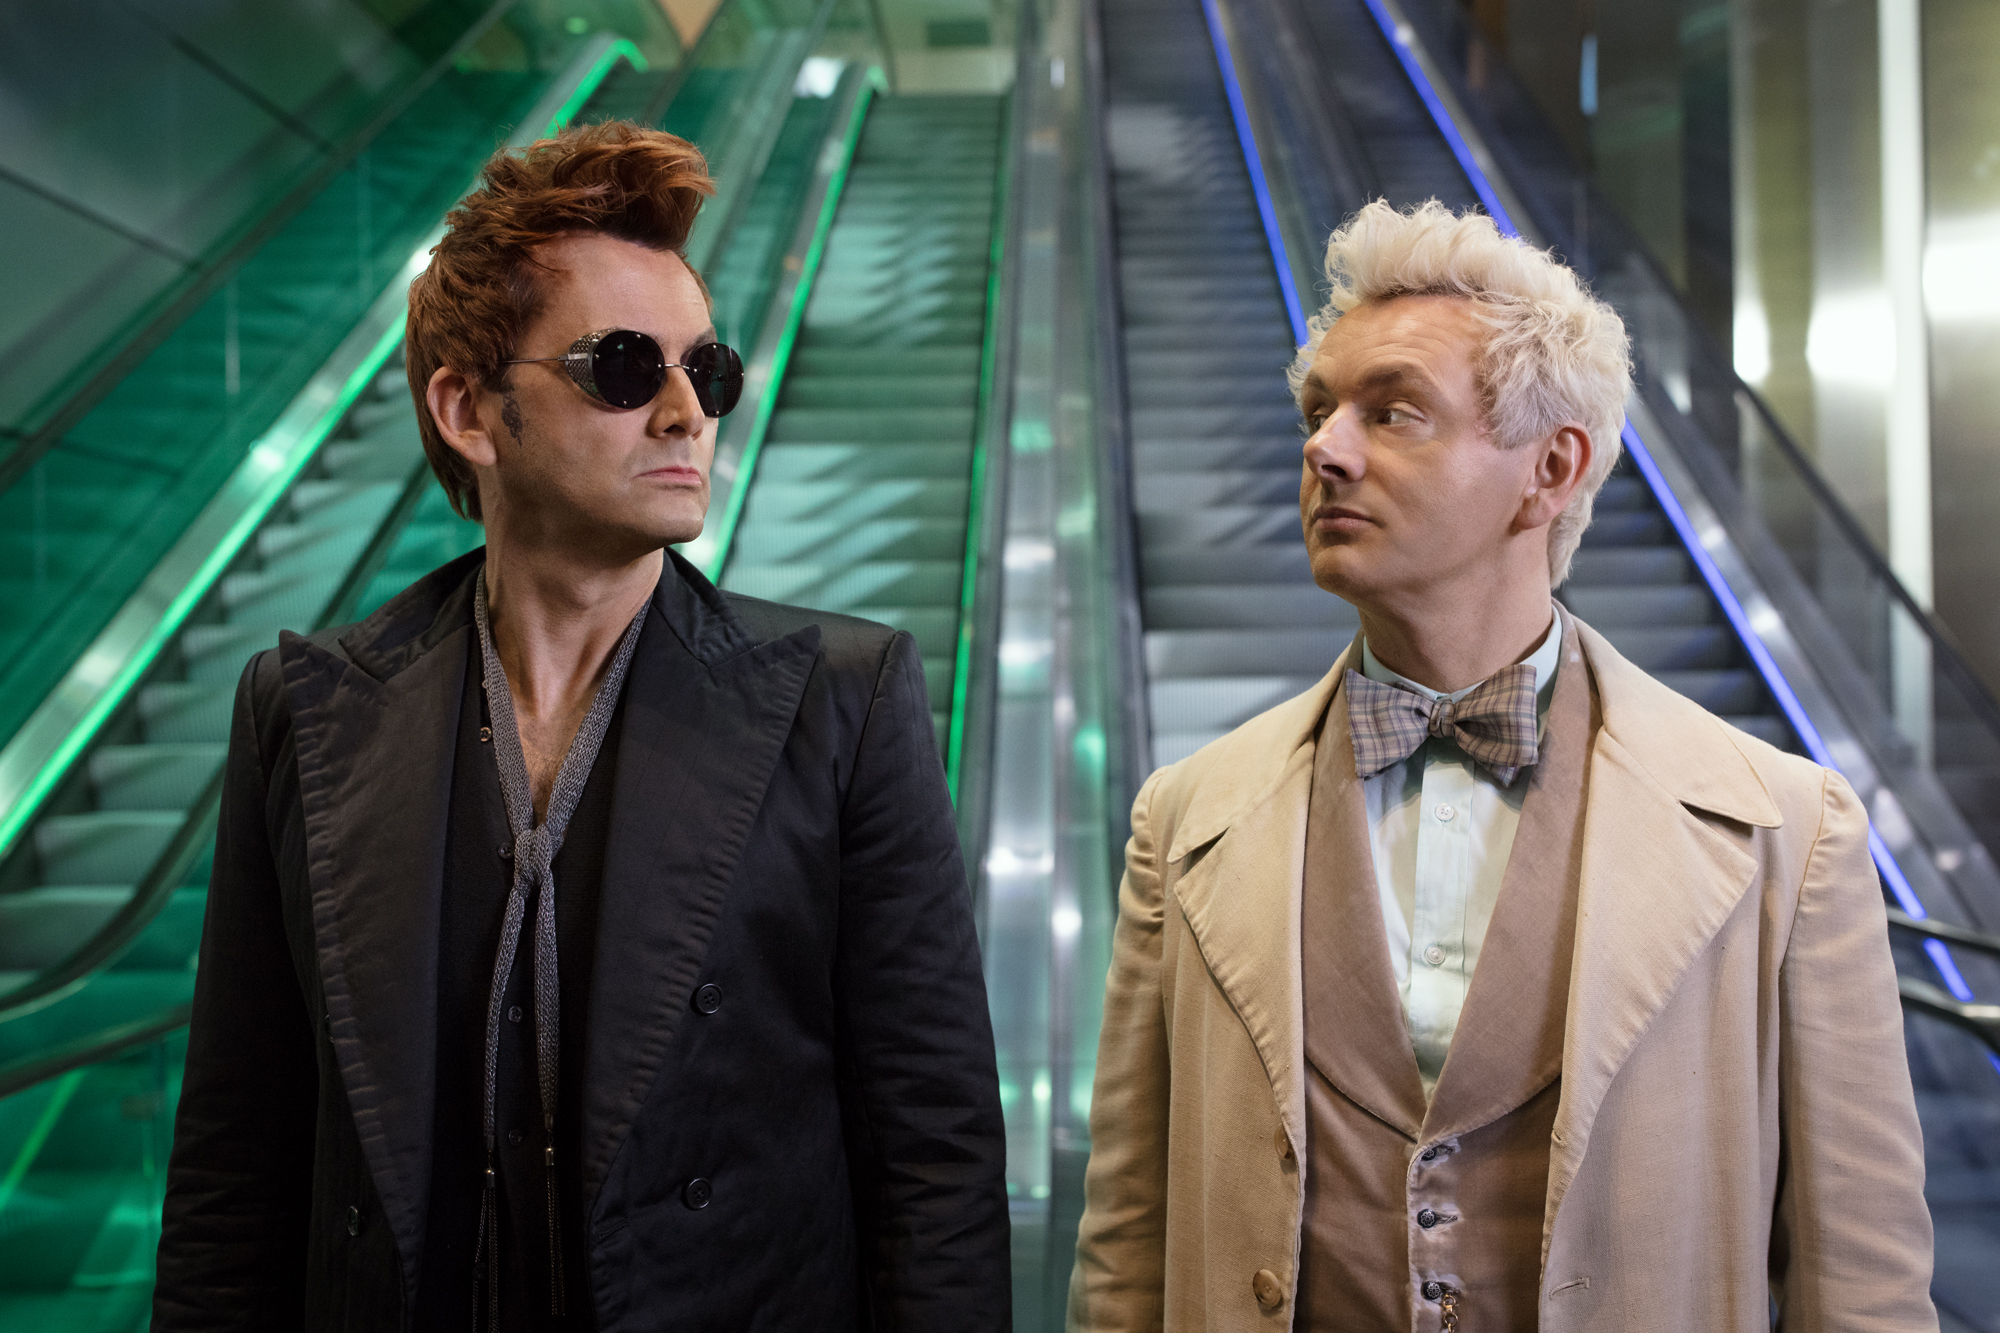 GoodOmens_Ep103_Day35_11.05.17_238A8620.cr2